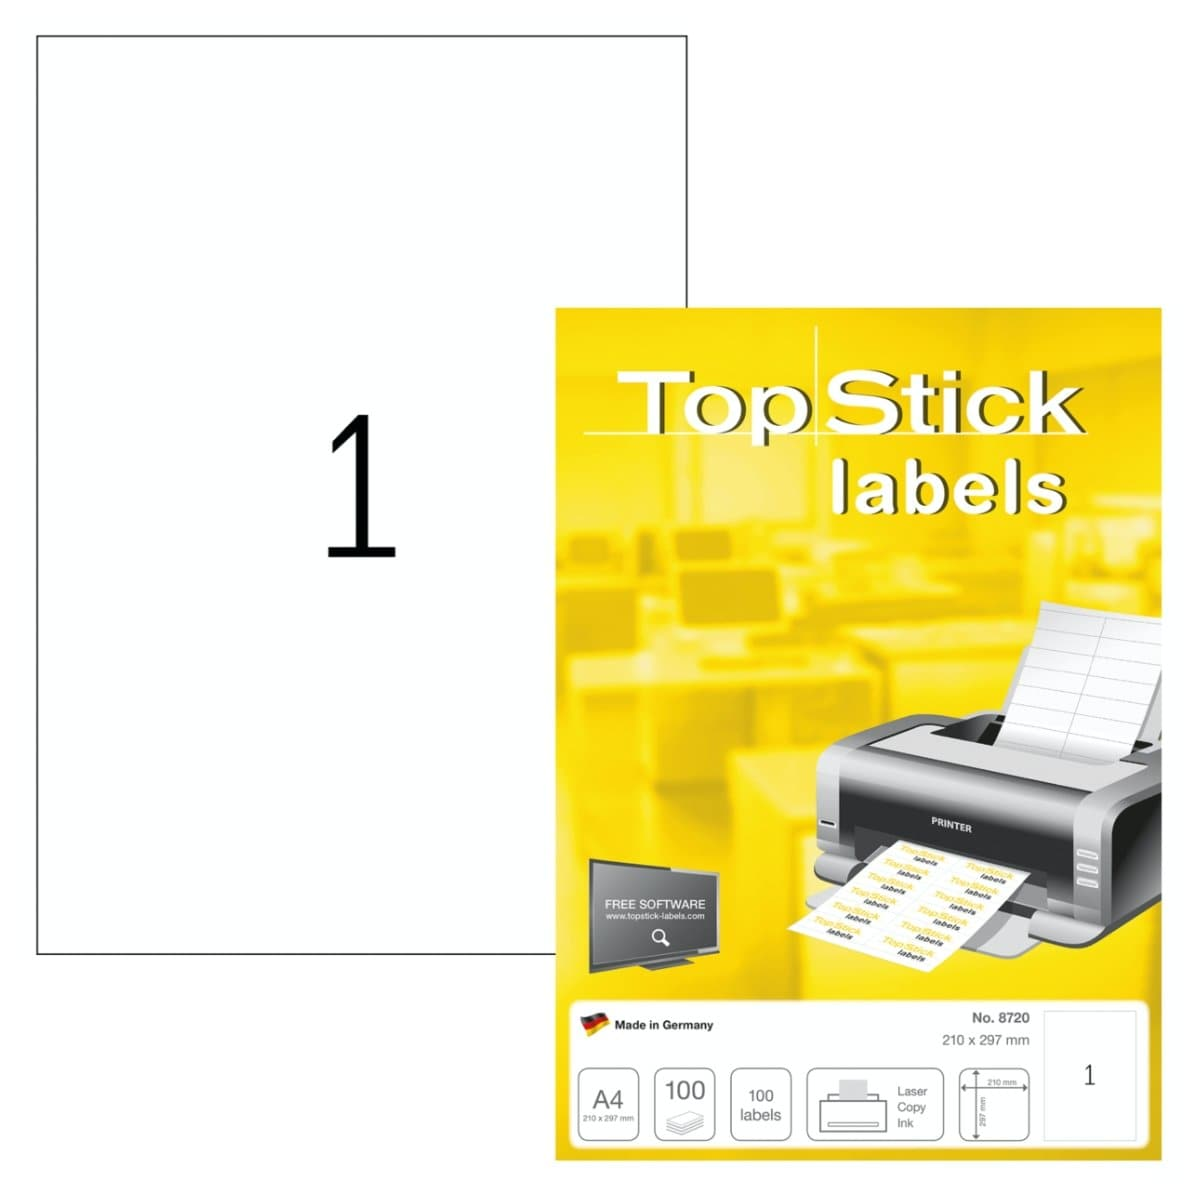 TopStick labels 1 label/sheet, sharp corners, A4 210 x 297 mm, 100sheets/pack, White